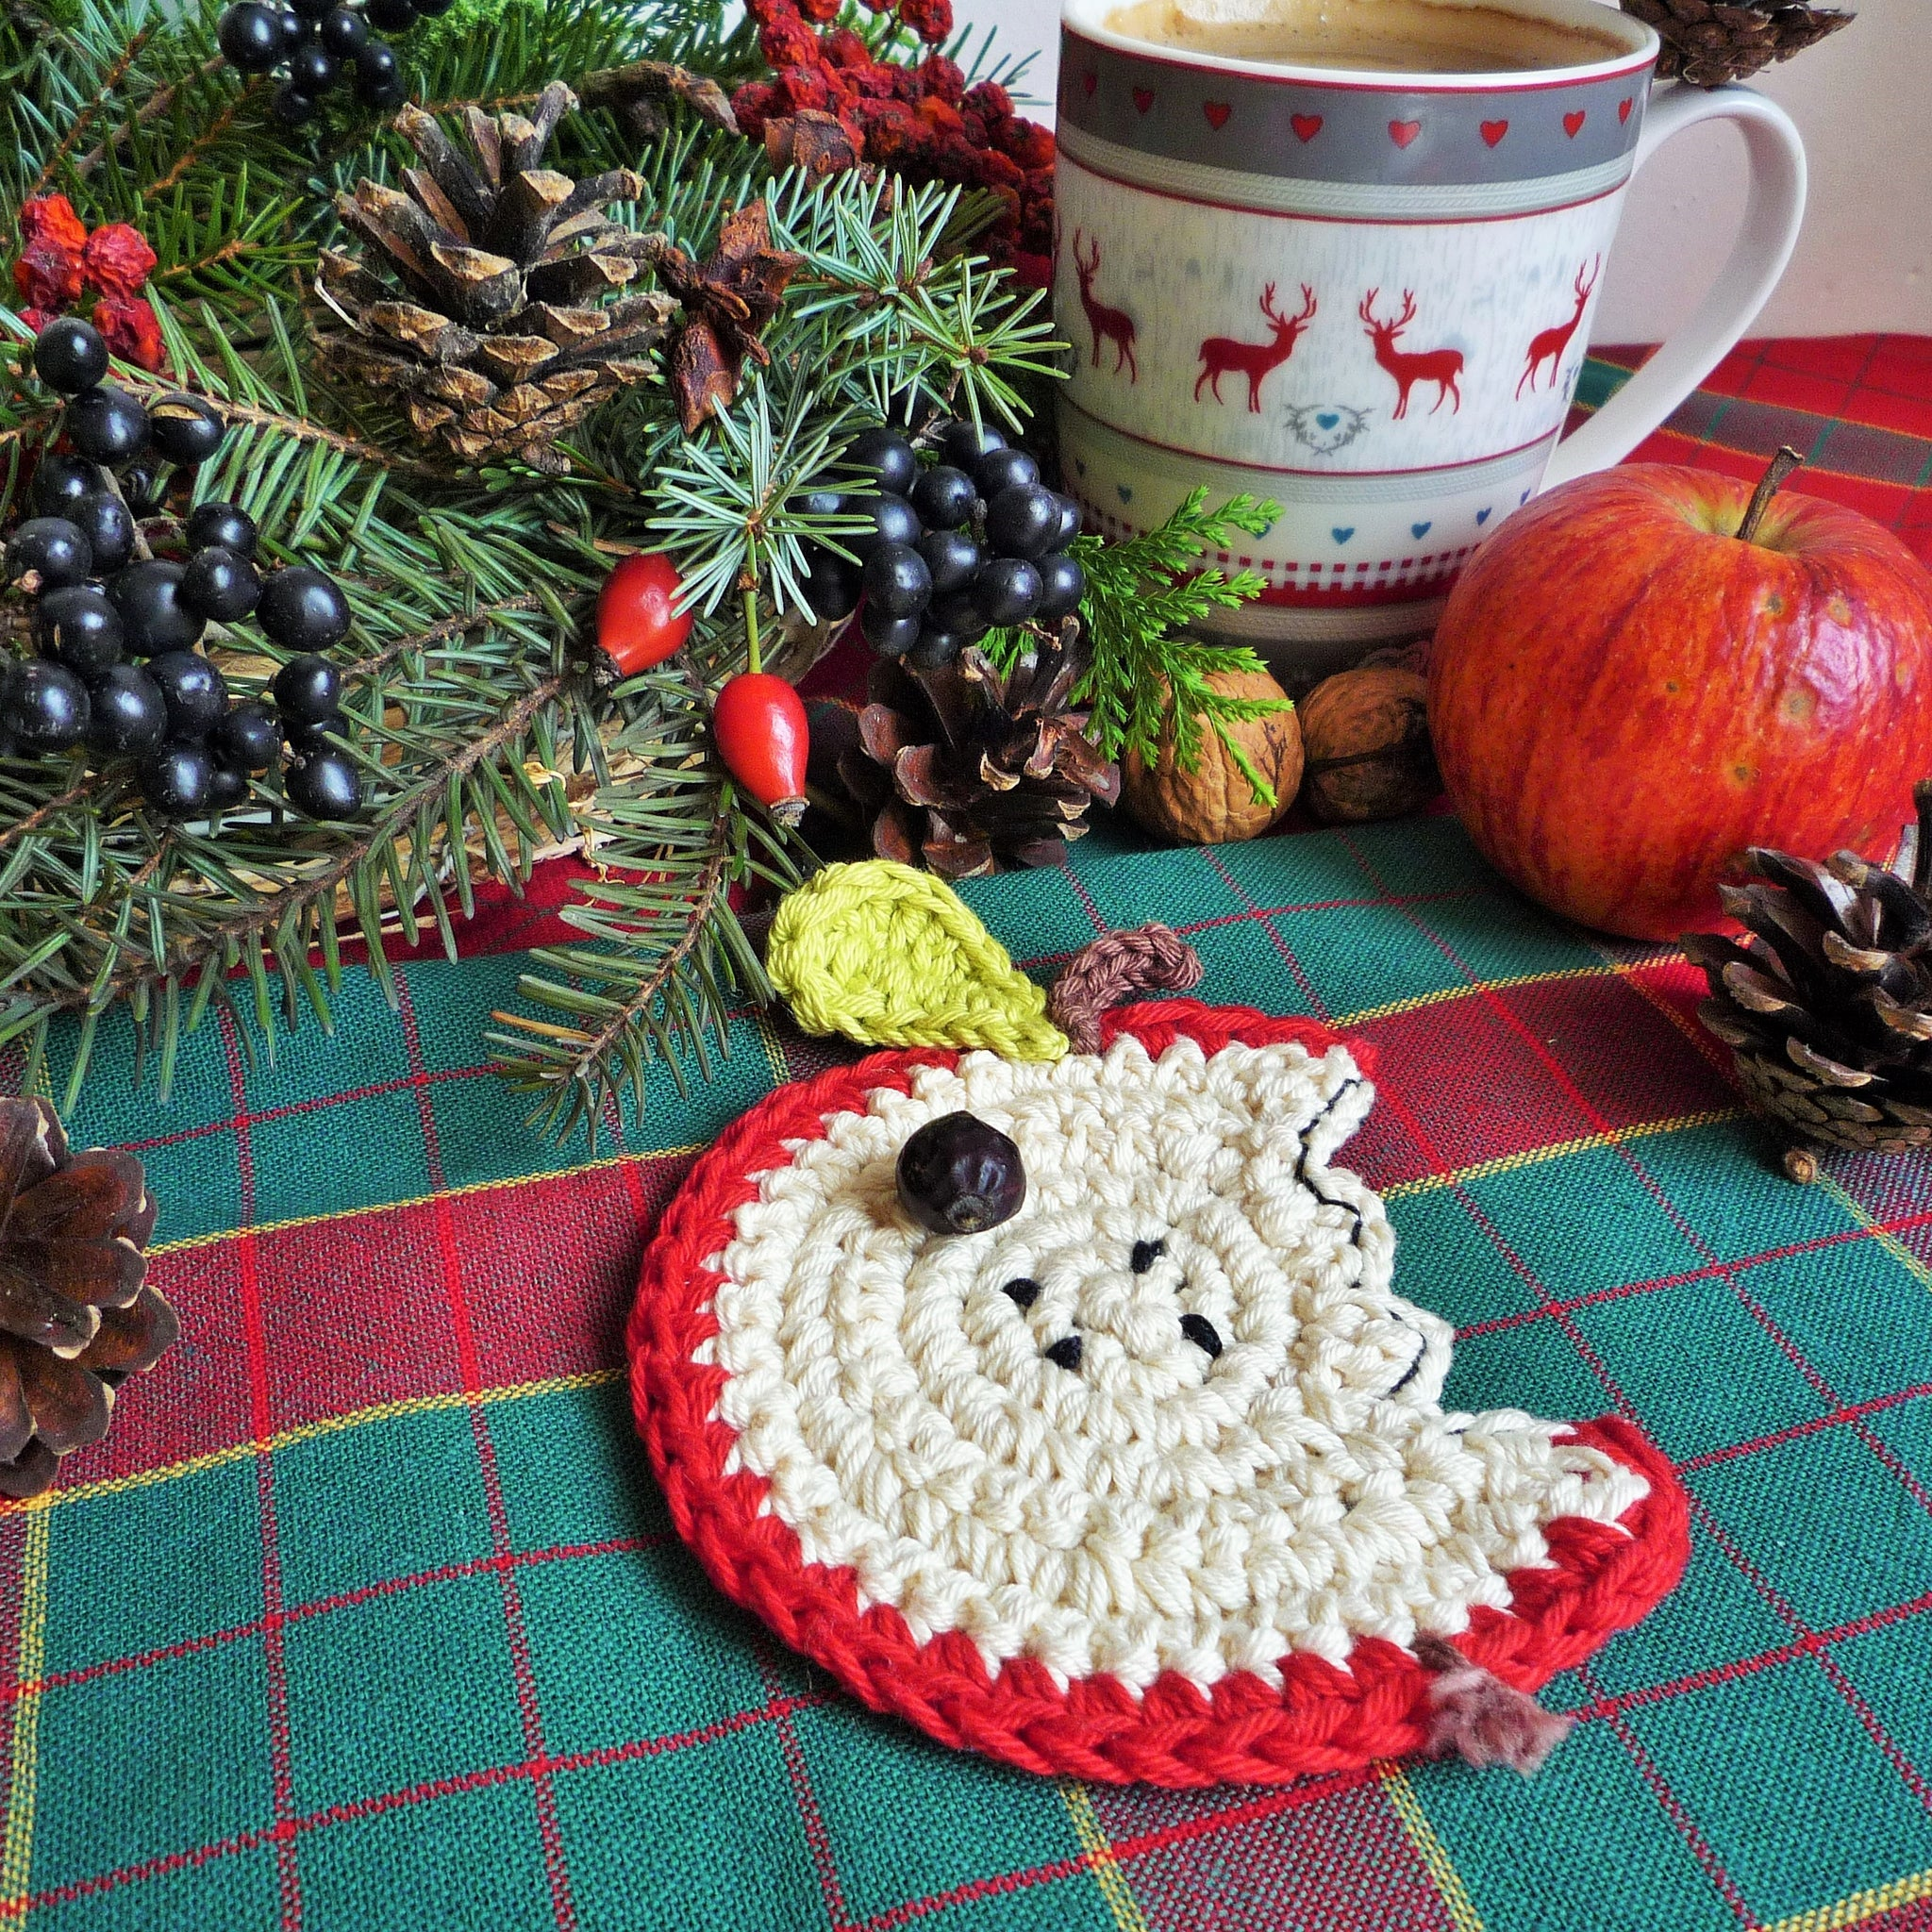 crochet apple coaster monikacrochet